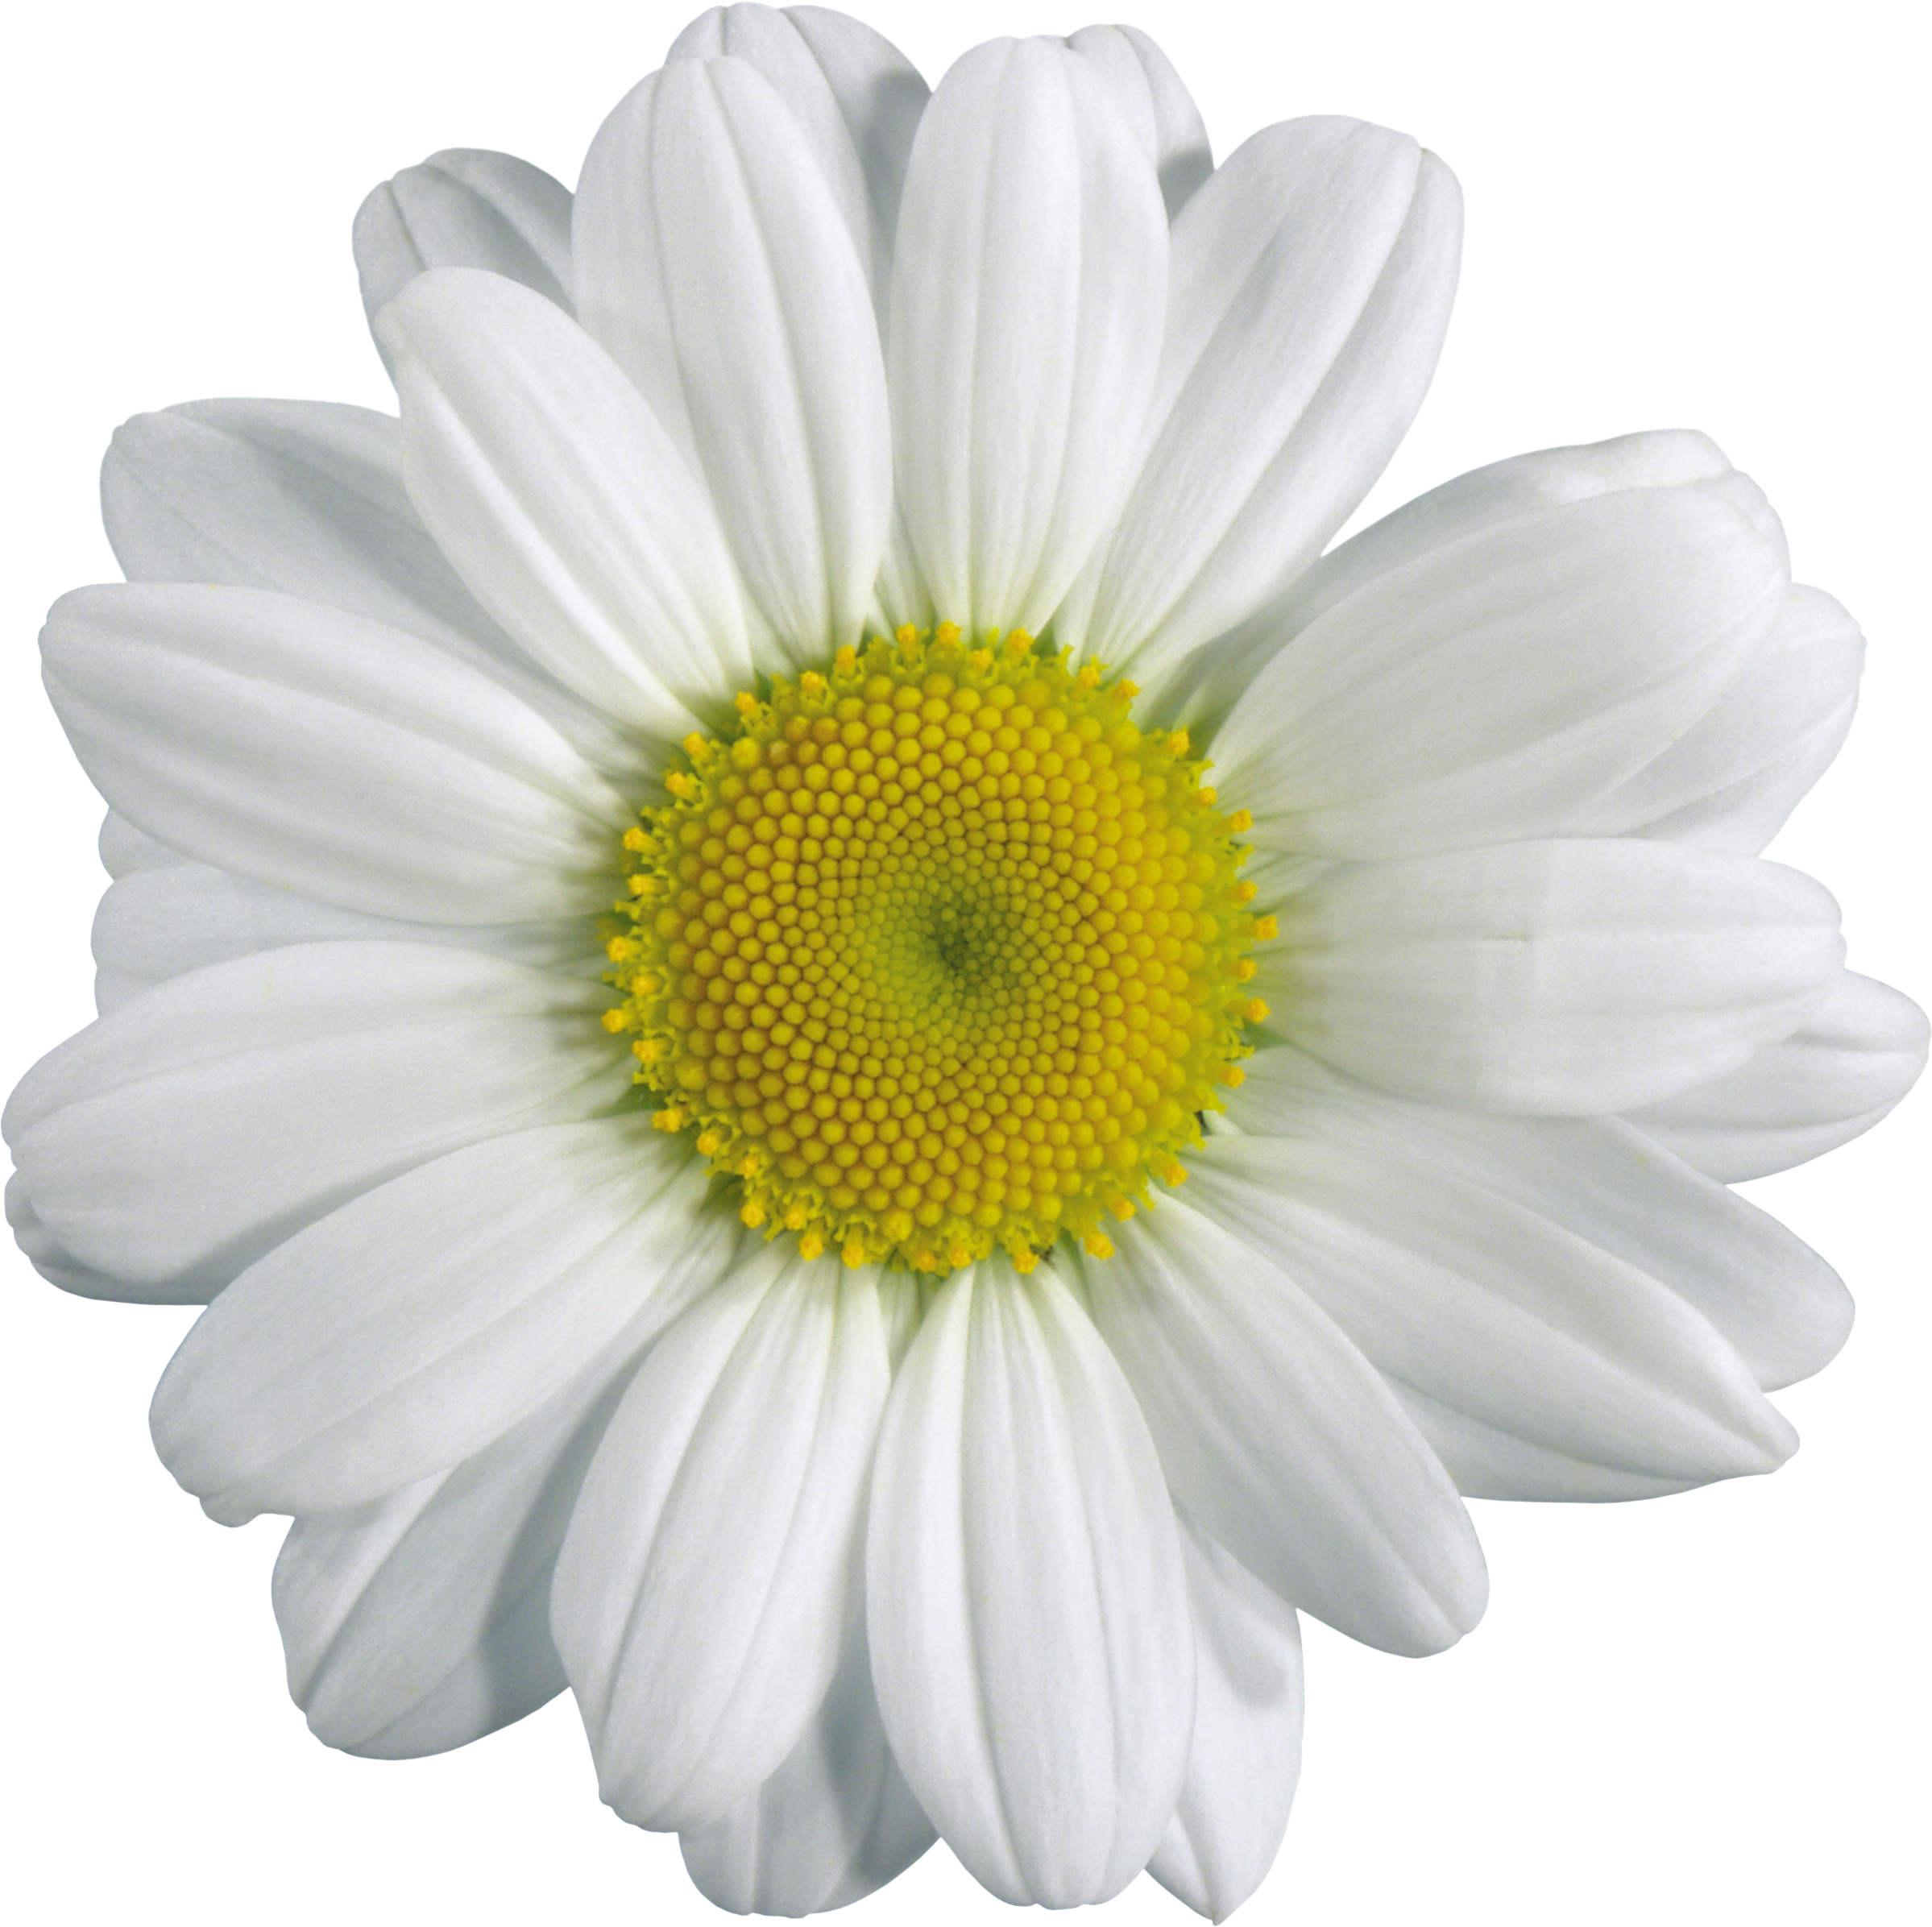 White flower png. Single transparent images pluspng